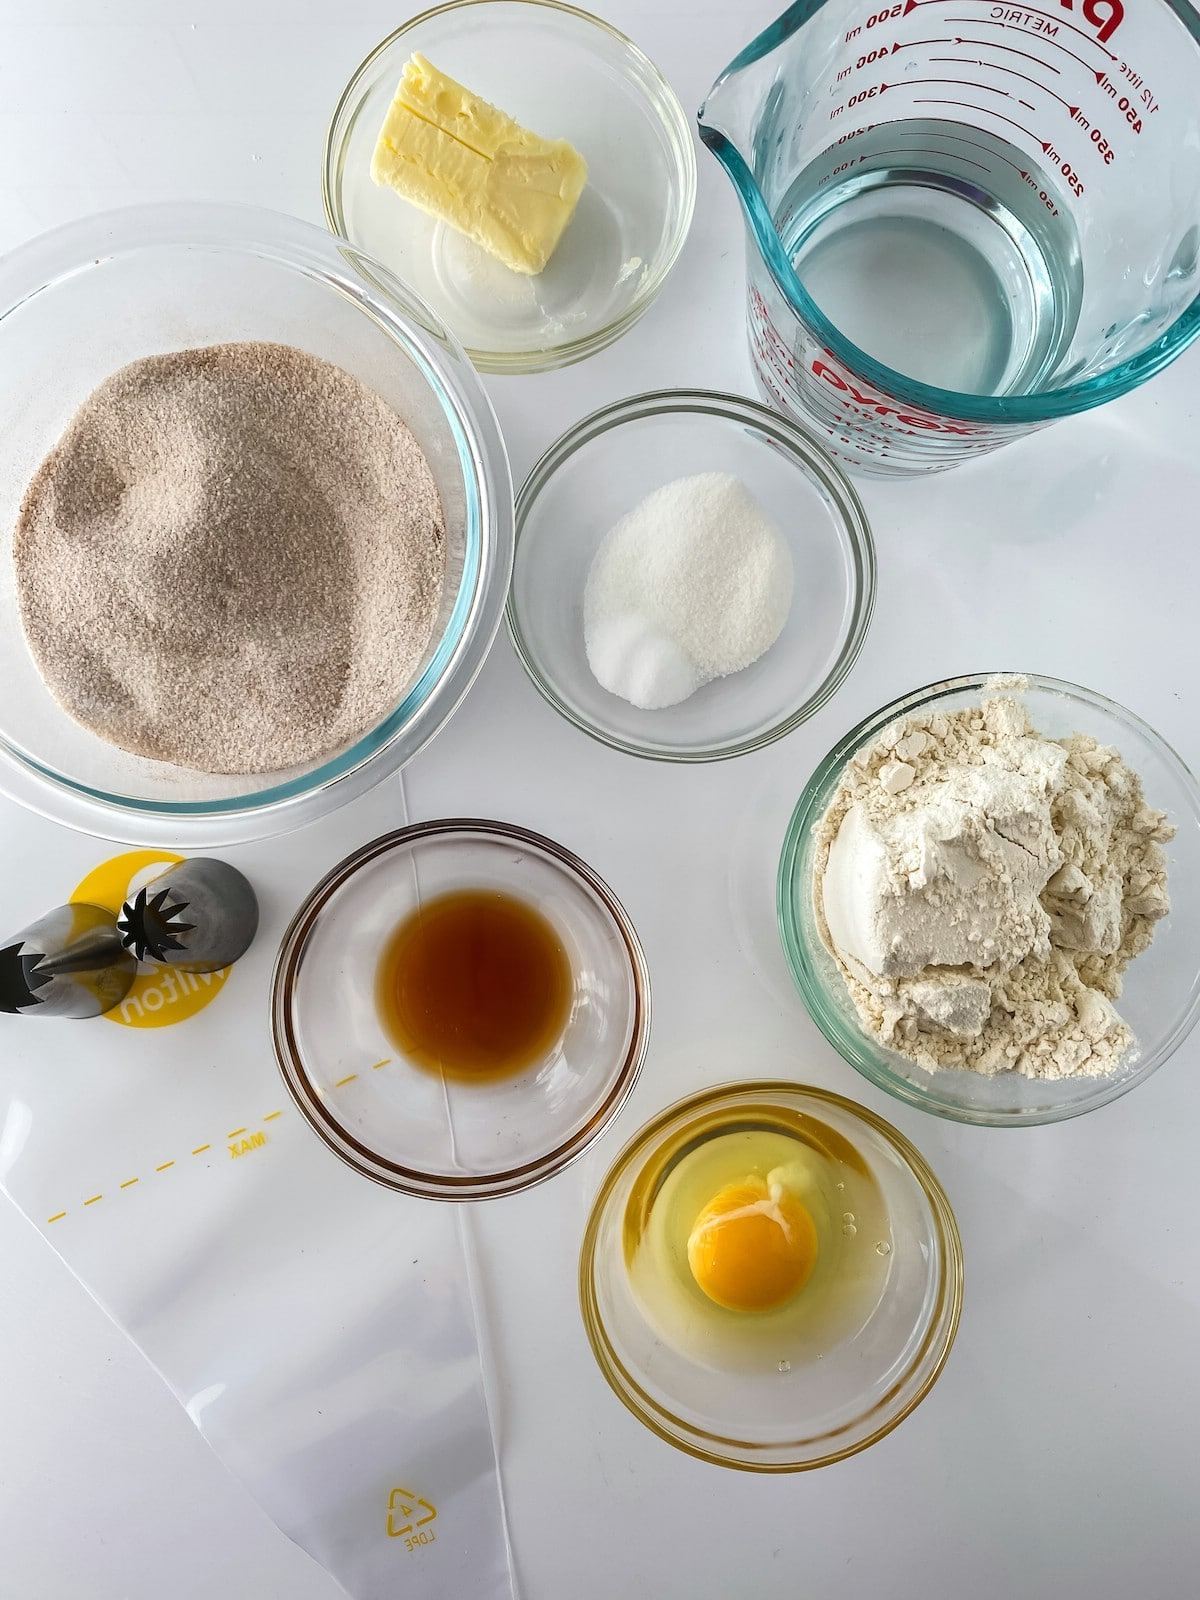 Ingredients for churros in glass bowls on table